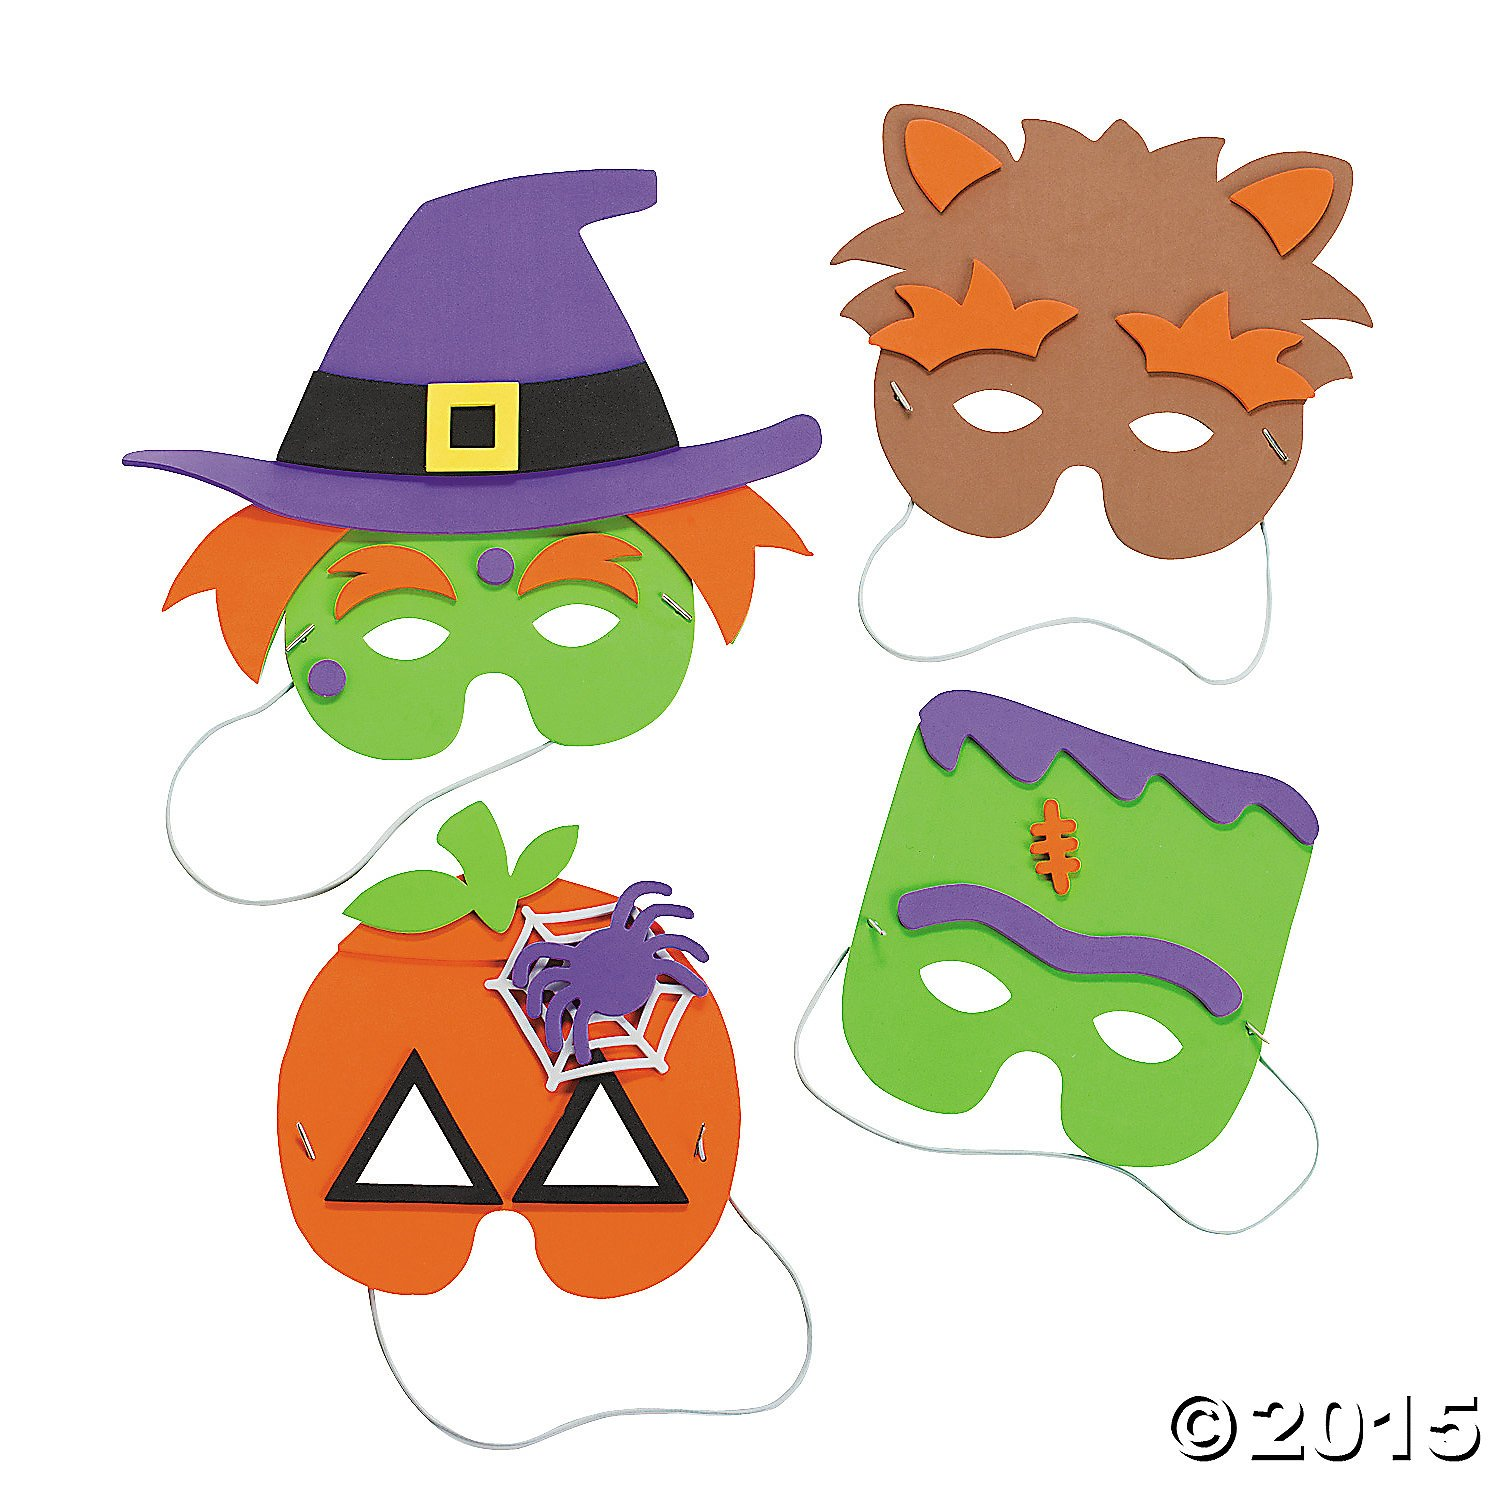 Kids halloween craft kits - Halloween Mask Craft Kit Crafts For Kids Hats Masks 1 Dozen Assorted Masks Amazon In Electronics